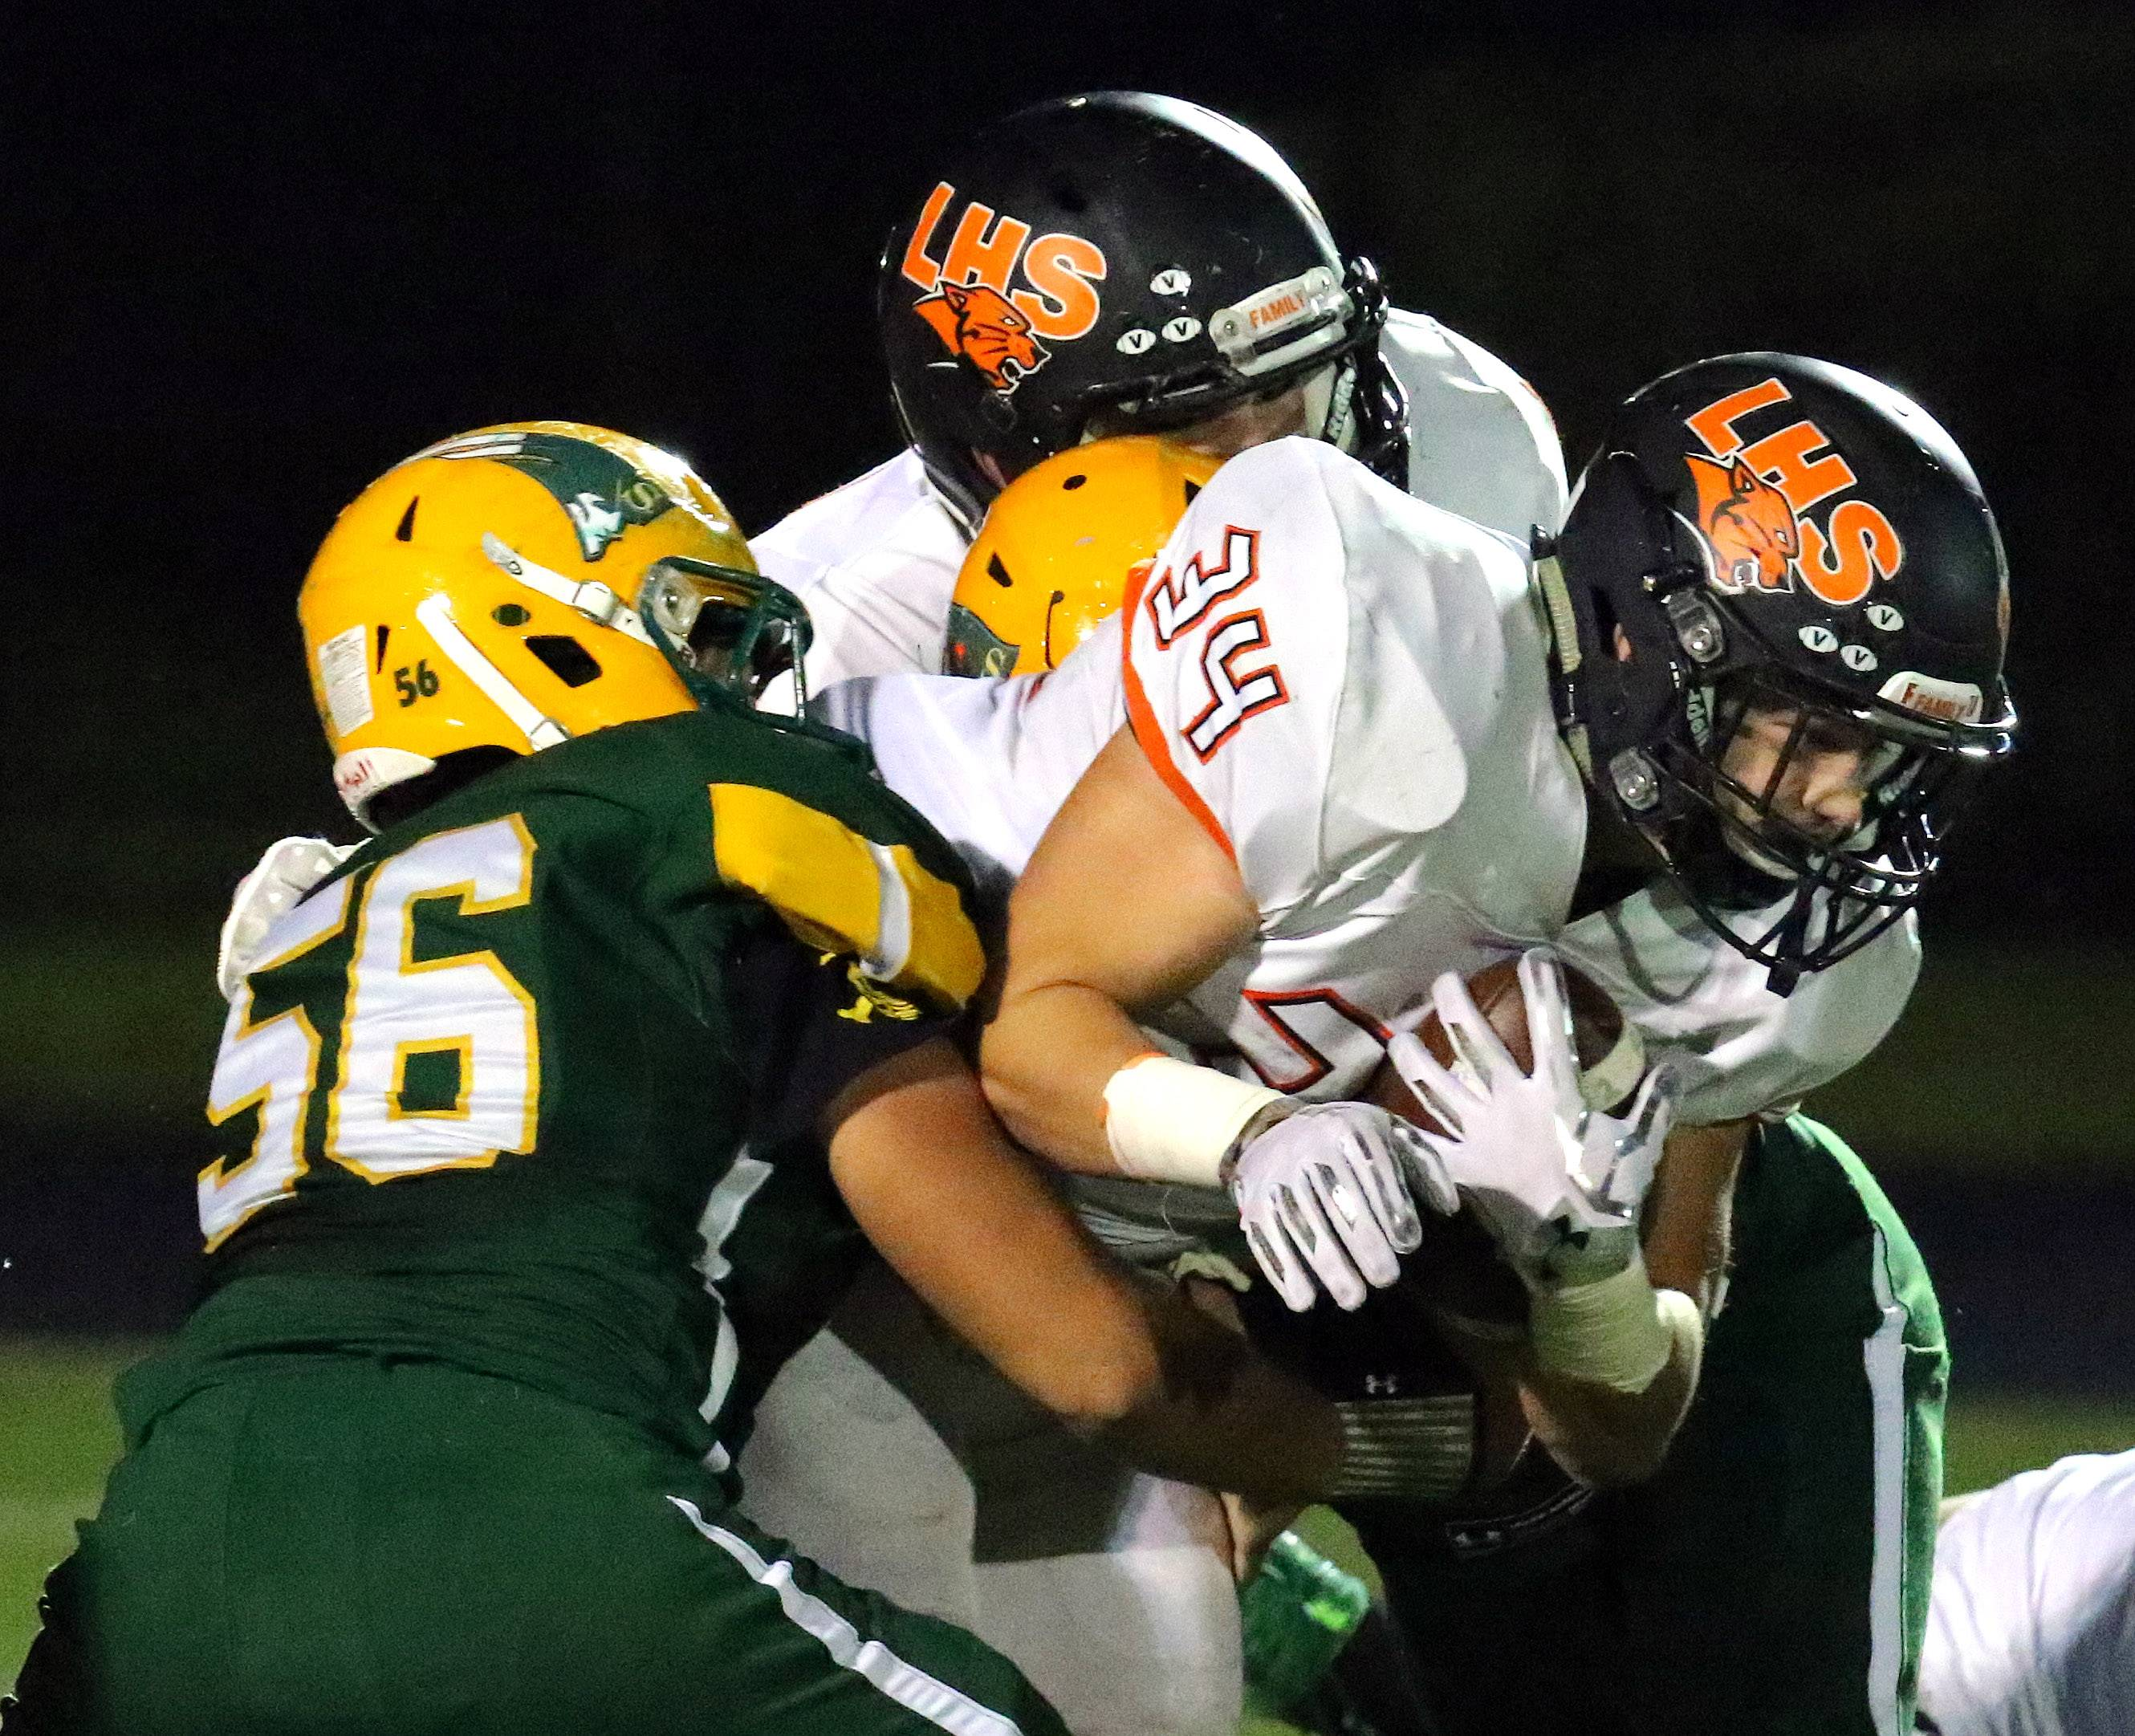 Libertyville's Brendan Bazar (34) runs for some tough yards as Stevenson's Tyler Kozub tries to wrap him up Friday night at Stevenson.